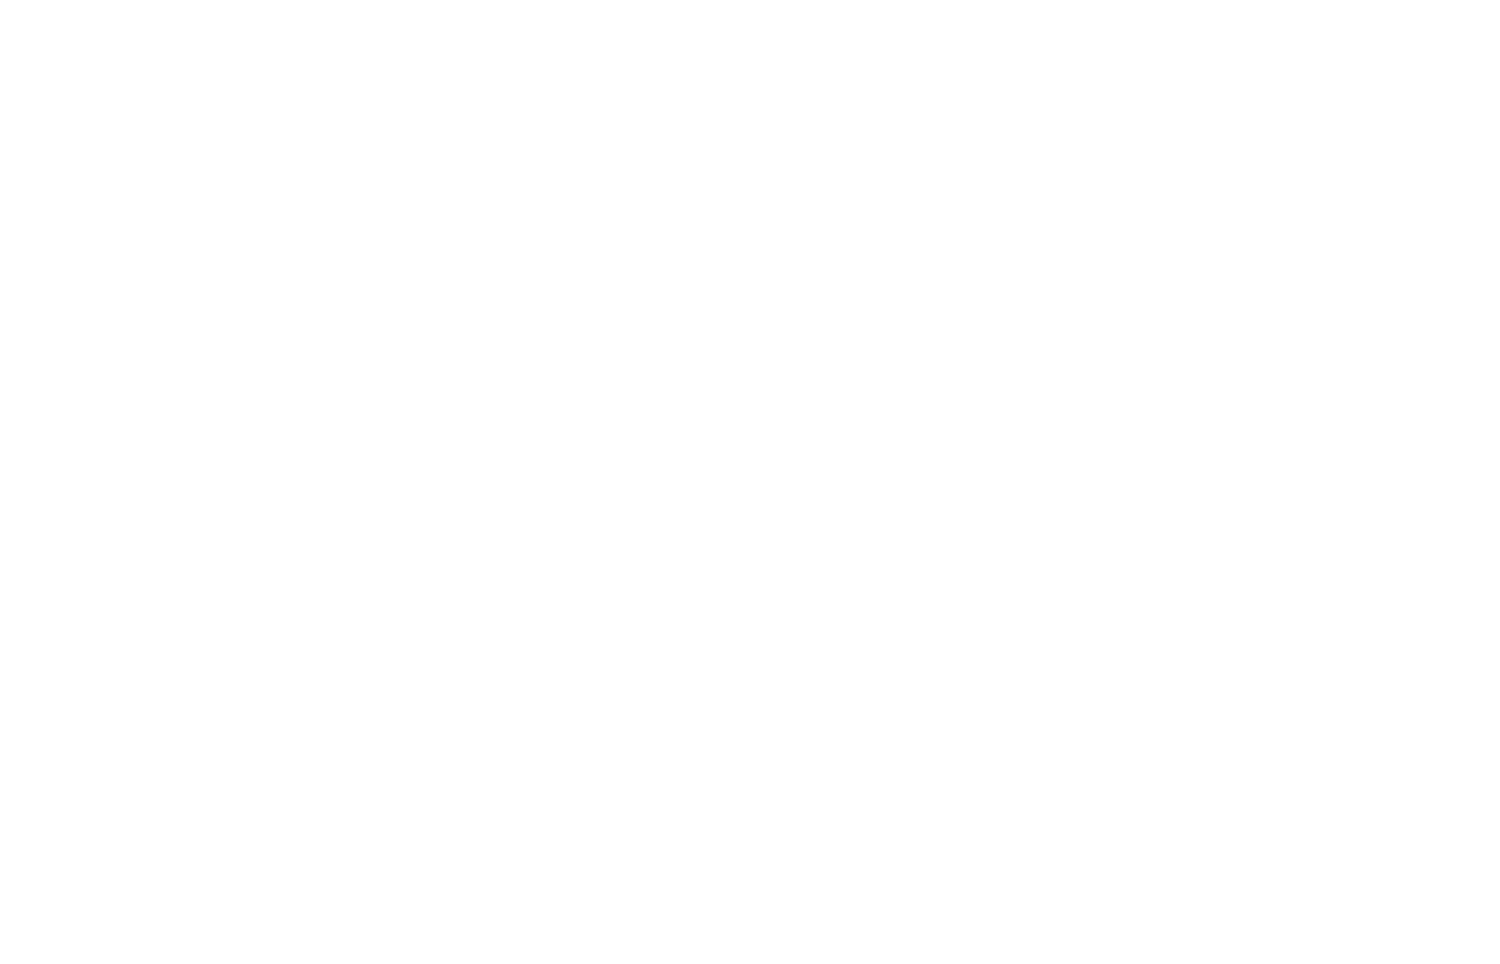 Southampton Christmas Lights